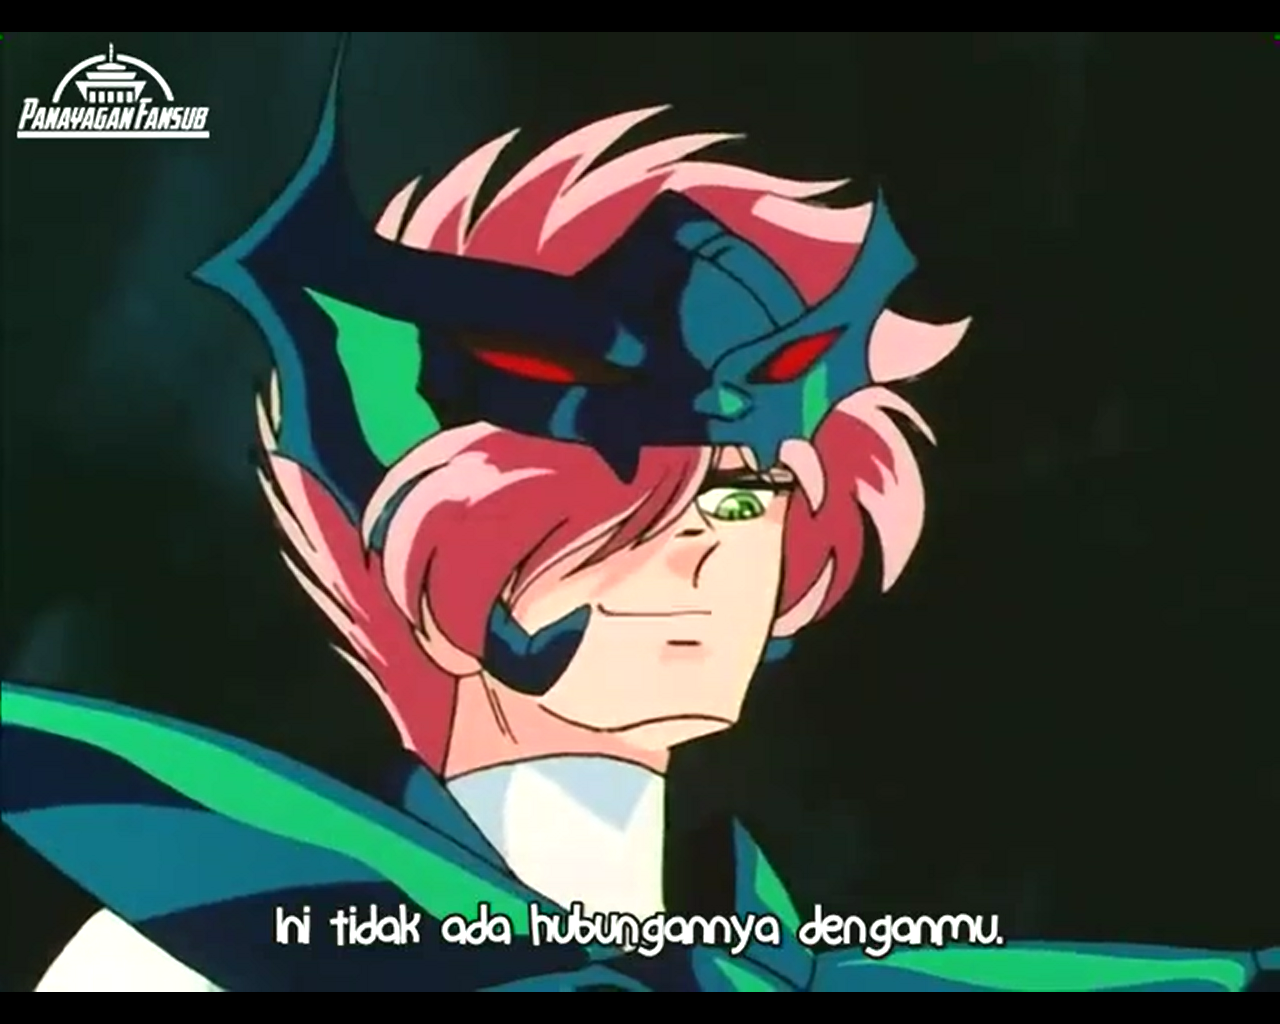 Download Saint Seiya Original Episode 88 Subtitle Indonesia